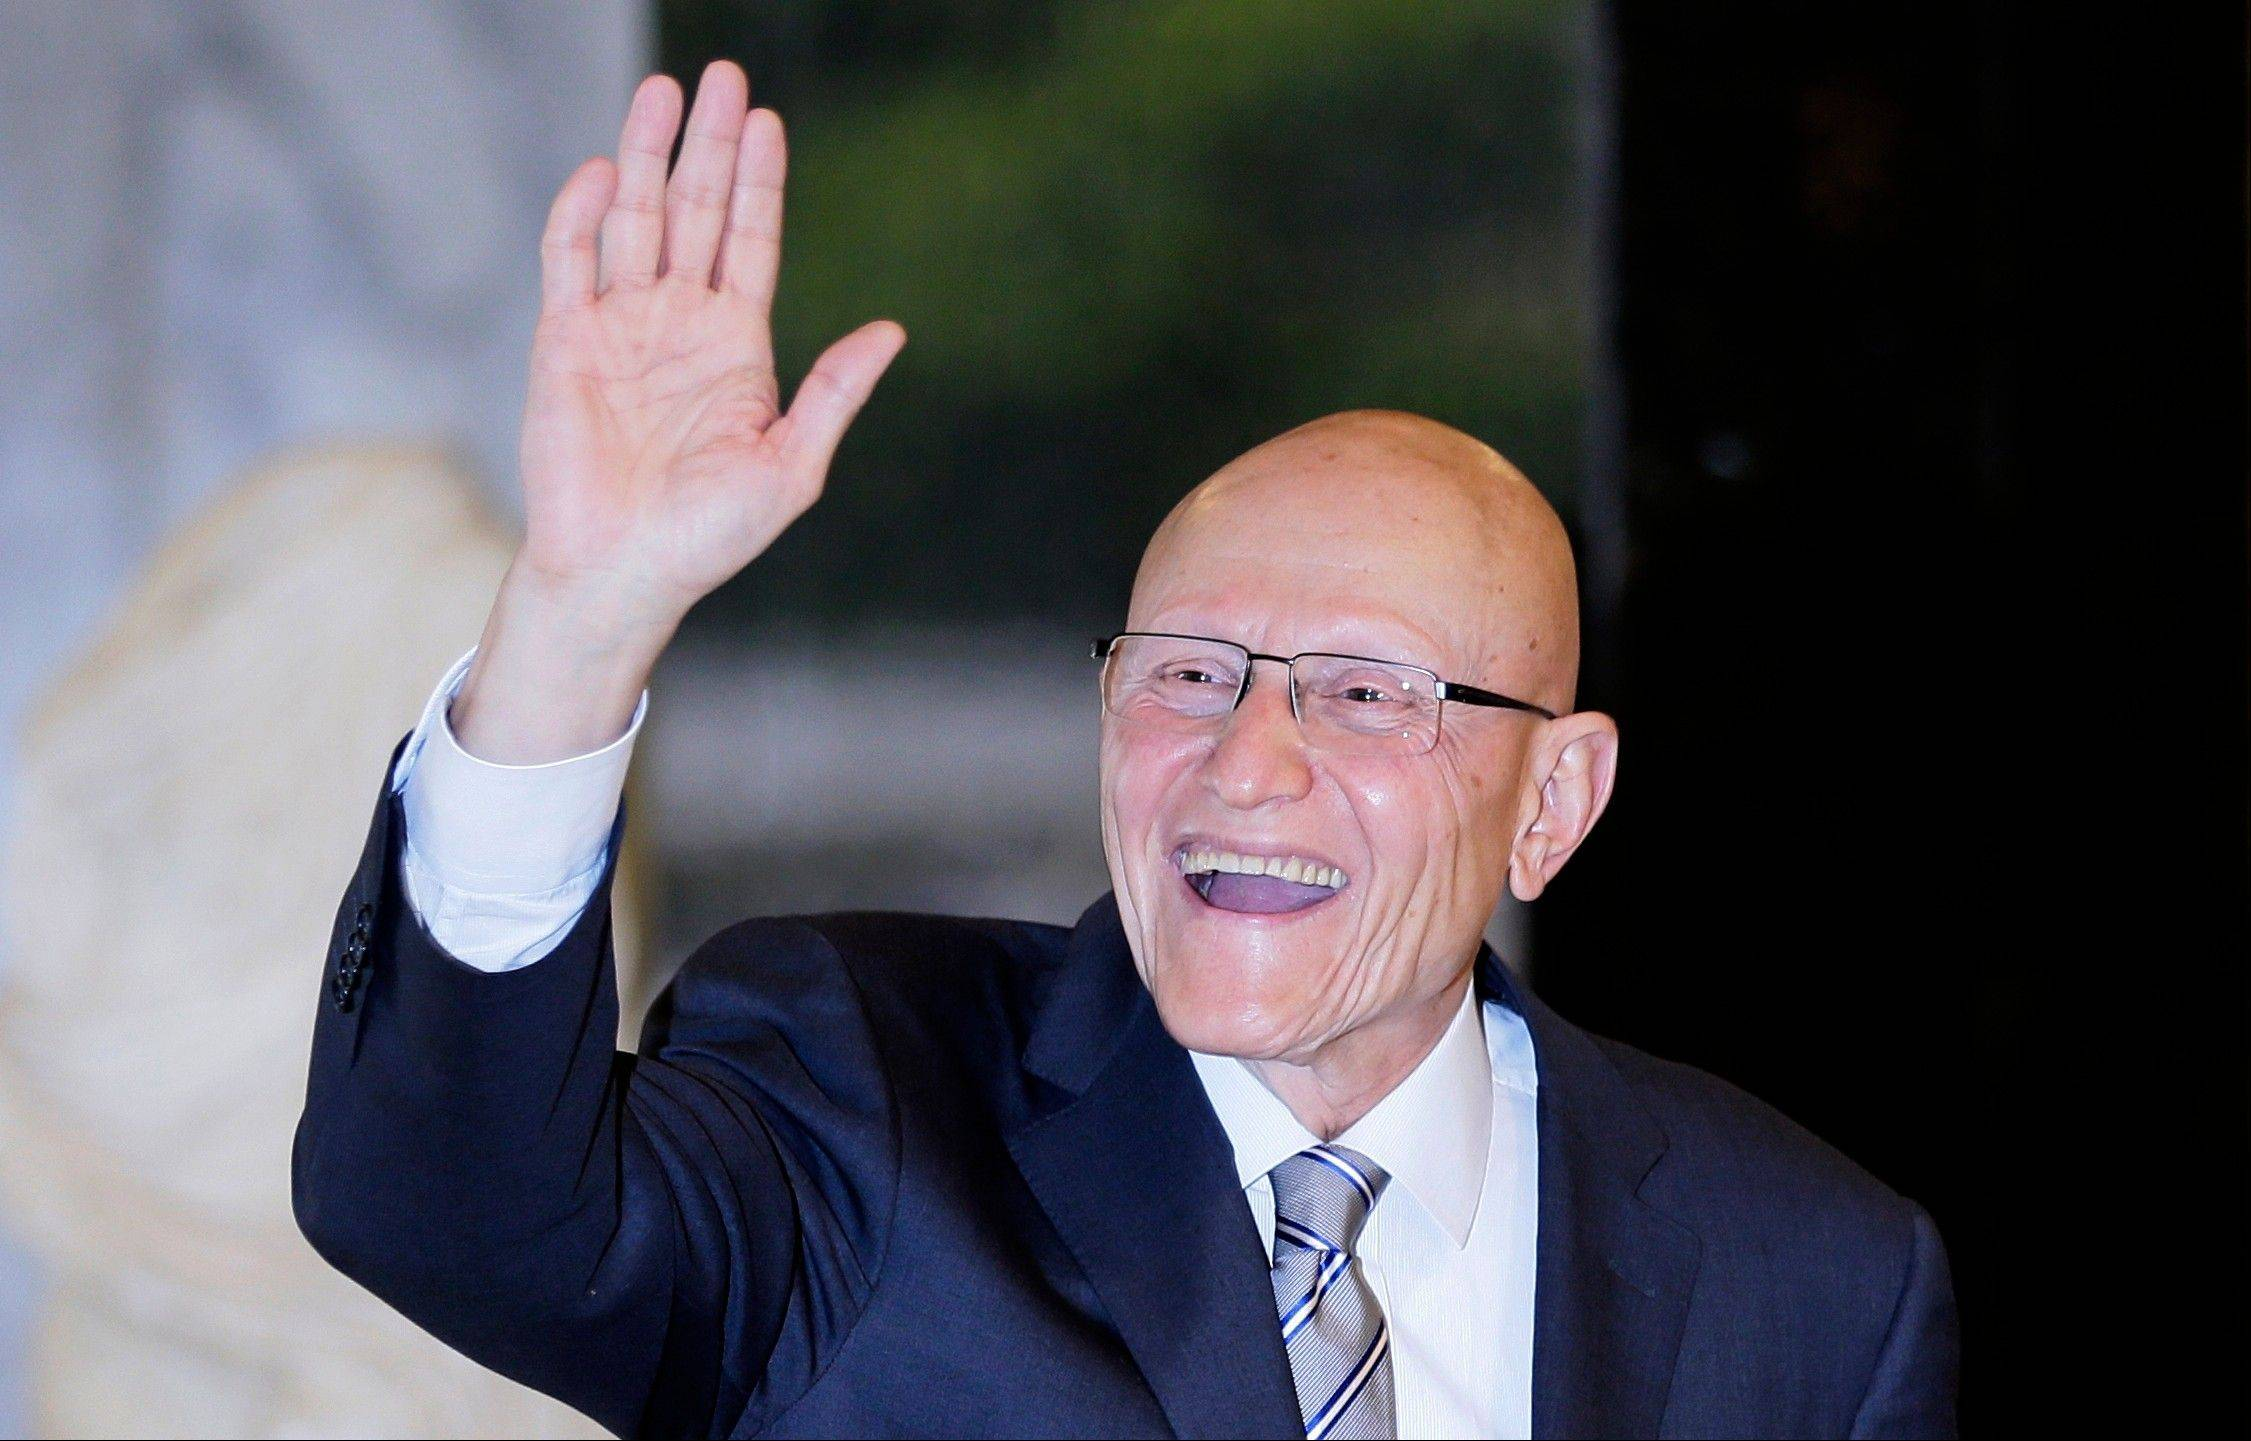 Lebanese Prime Minister designate Tammam Salam gestures upon his arrival to the presidential palace in Baabda, east of Beirut Saturday, April 6. Following two days of consultations, President Michel Suleiman asked legislator and former Minister of Culture Salam to form the new cabinet after 124 of the 128-member parliament chose him for the job.